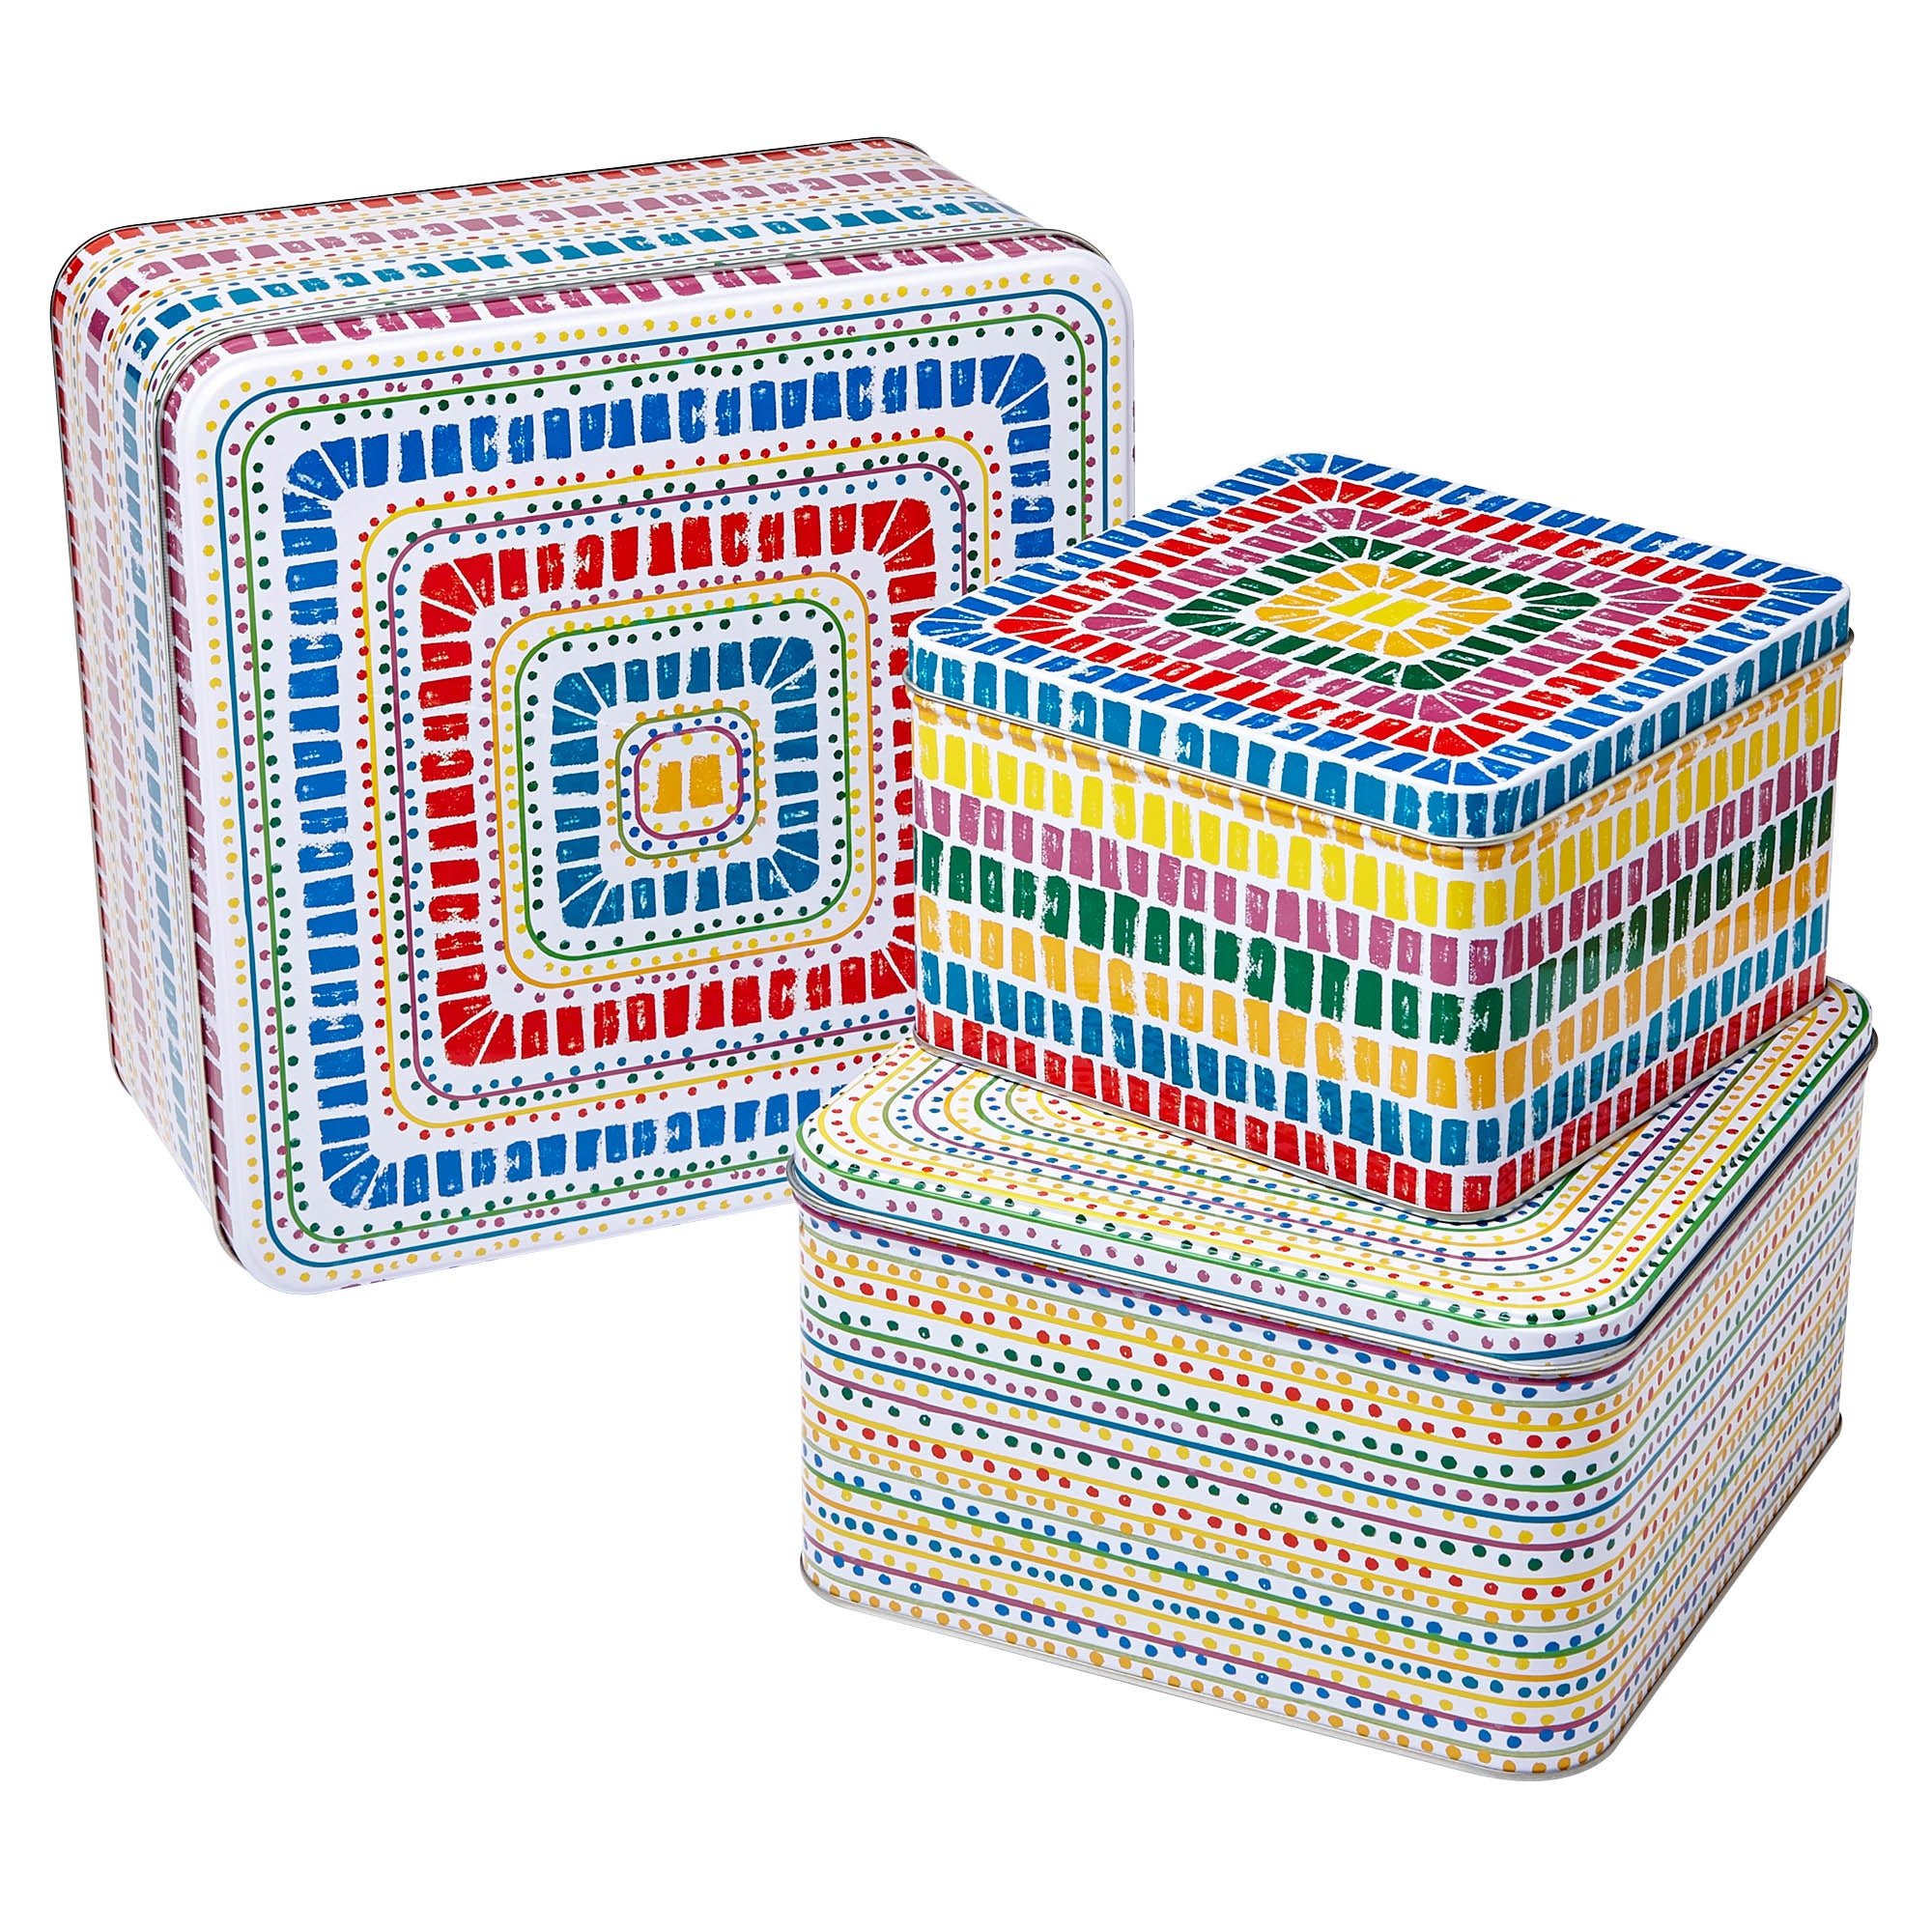 Image of Seville Set of 3 Square Tins Yellow / Red